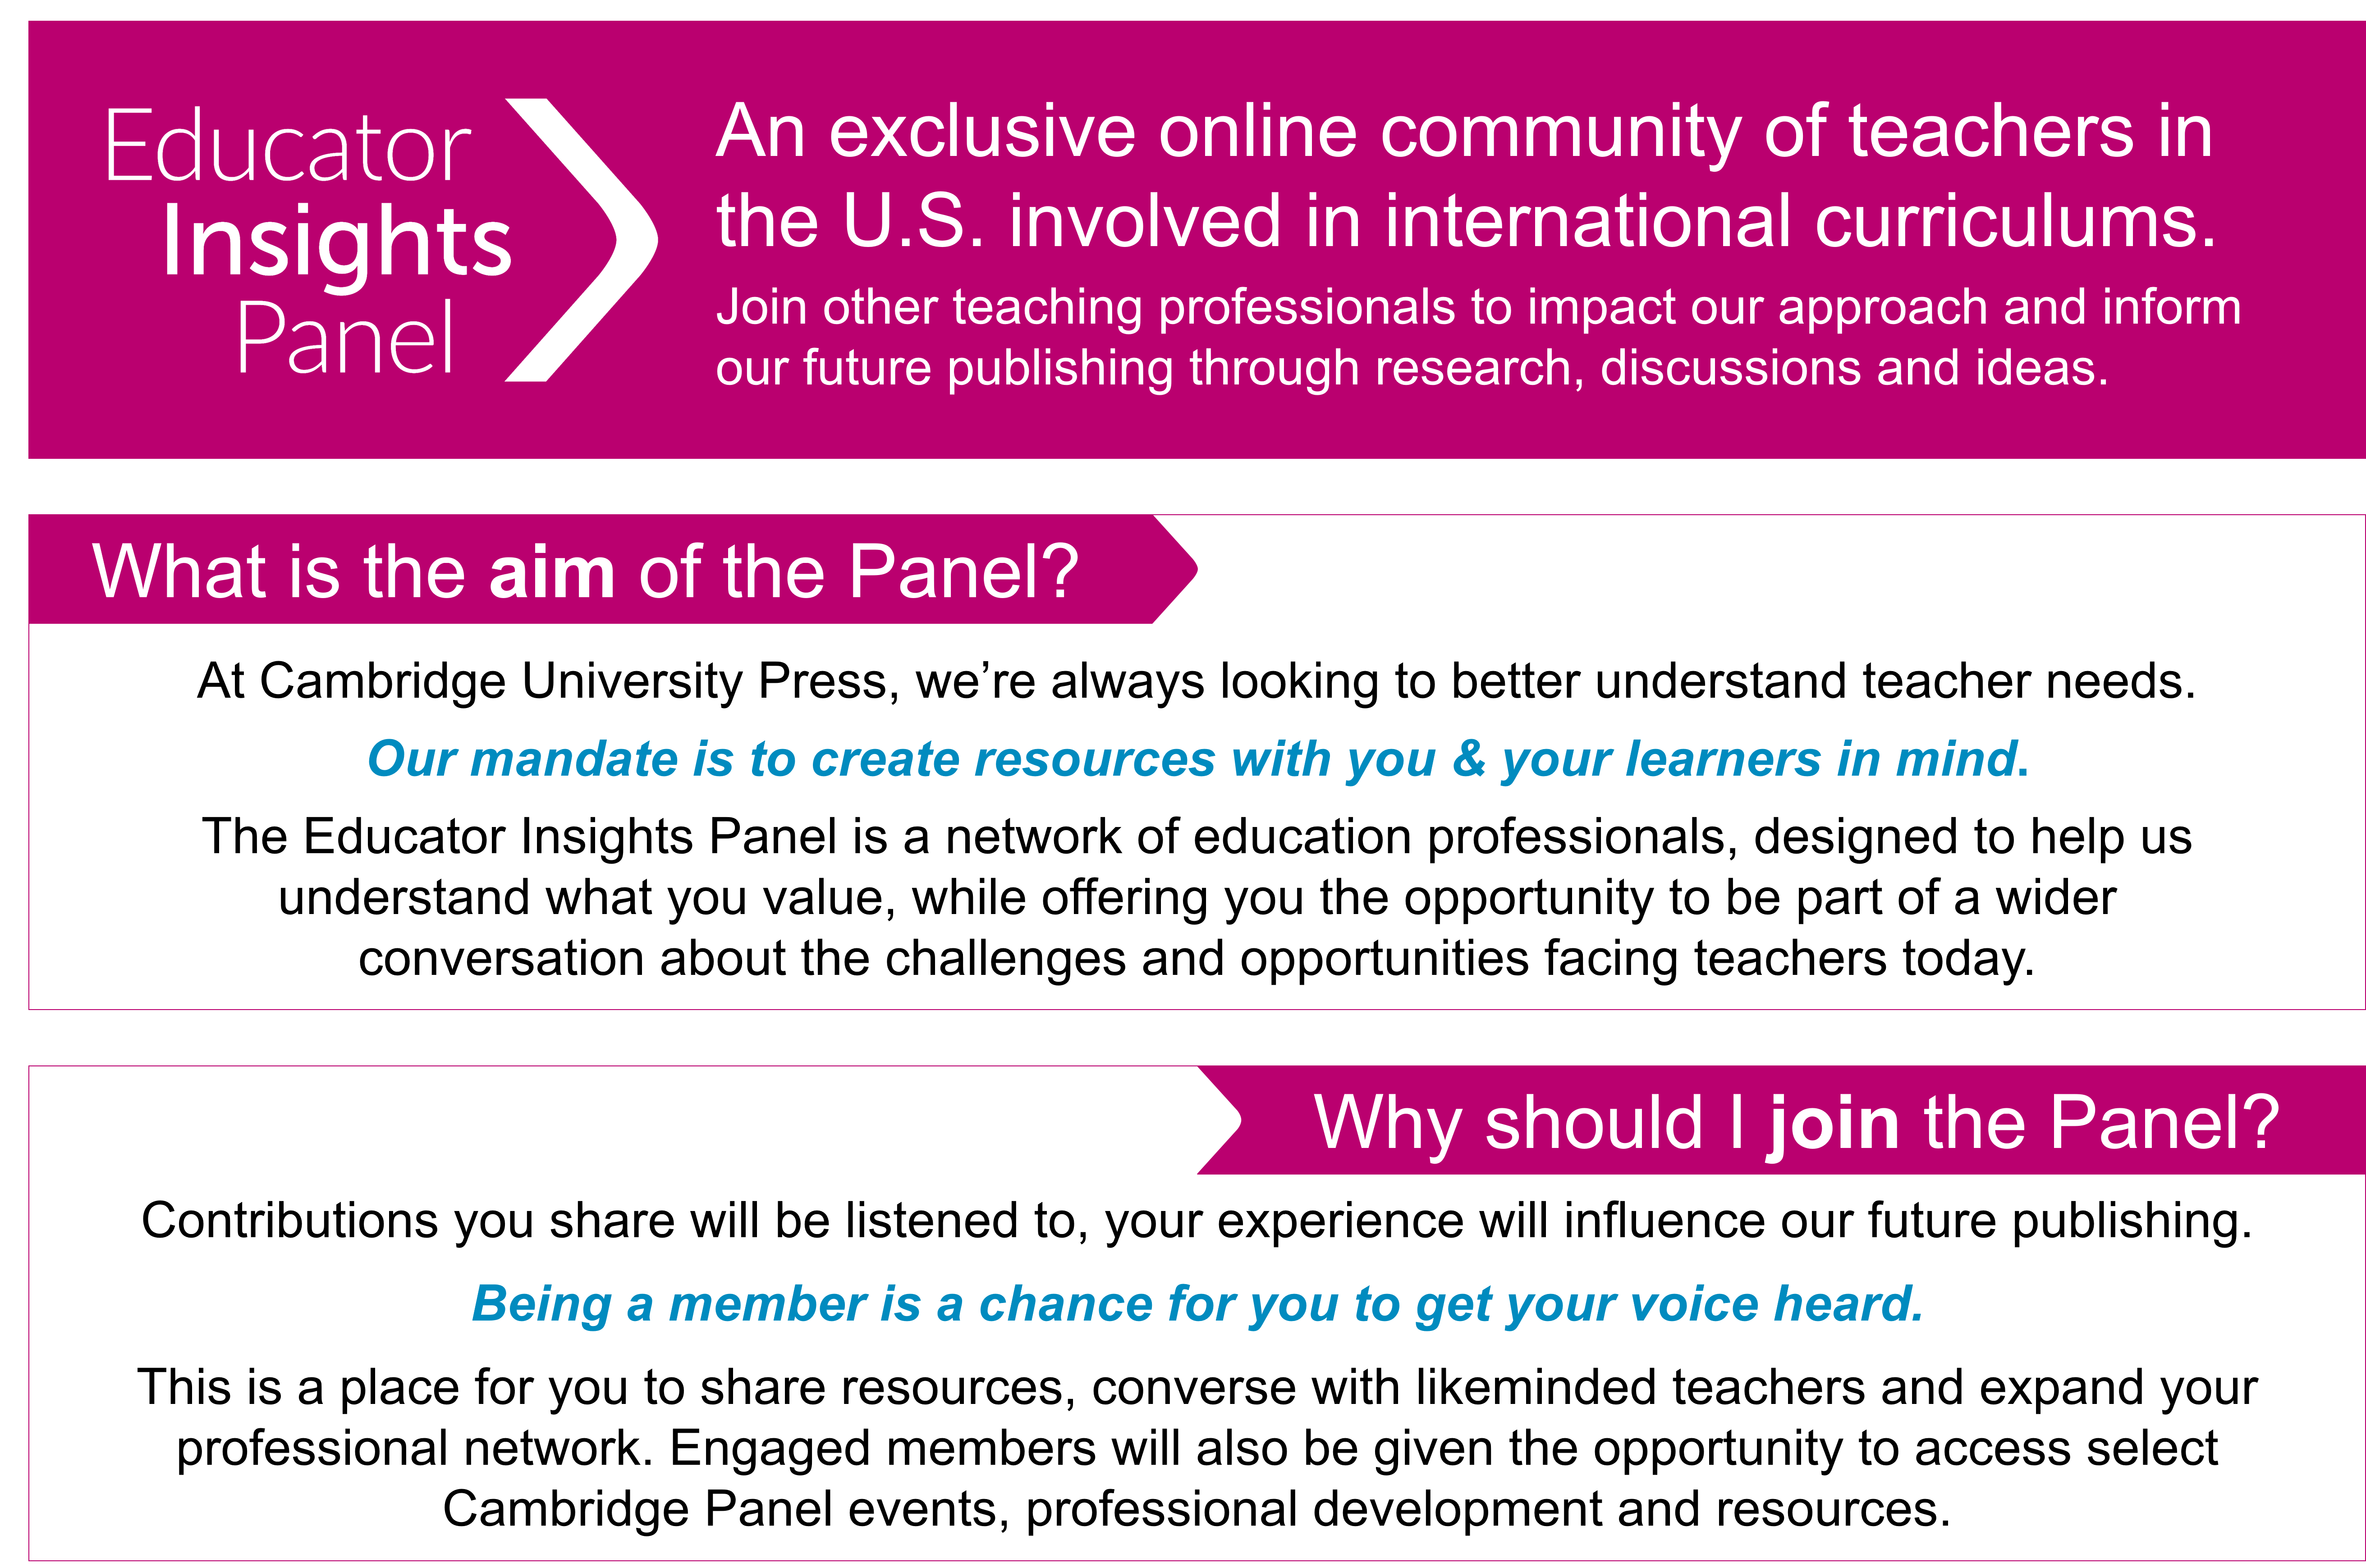 About the Educator Insights Panel